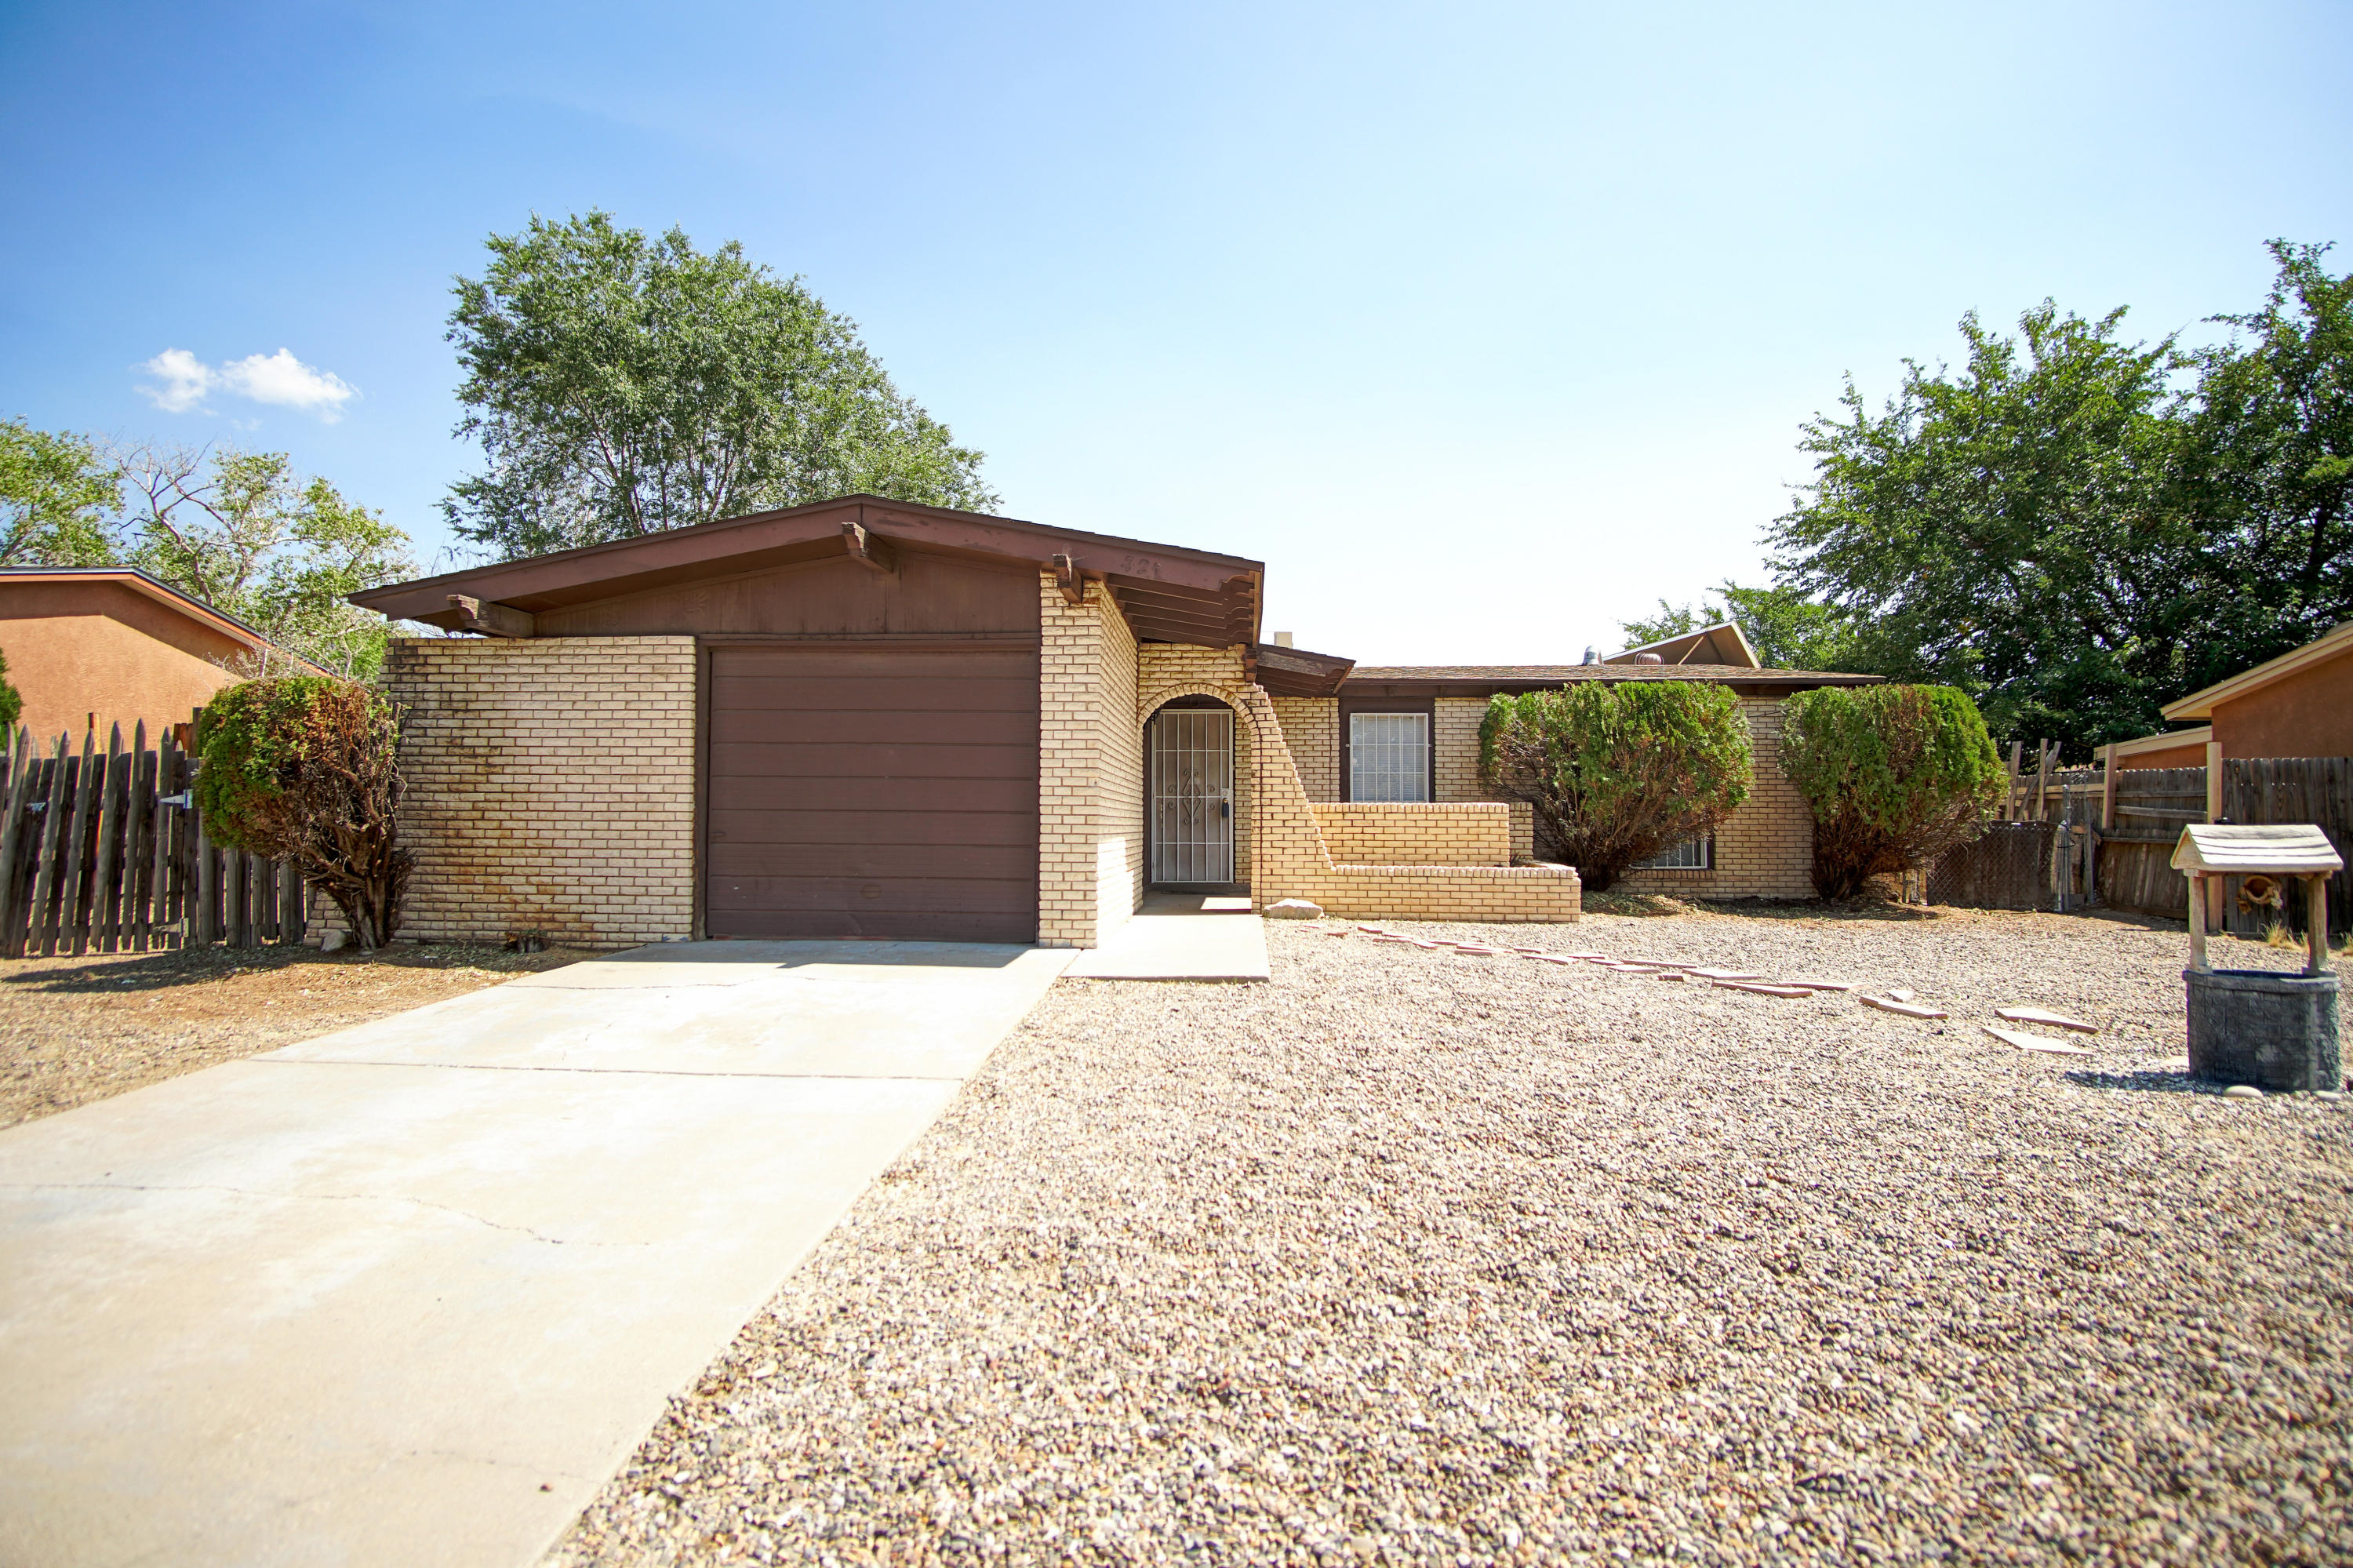 Great find in the NE Heights. Ranch style home in quiet neighborhood close to Juan Tabo and I-40 access. This 3 bed, 2 bath home has a great layout that features flexible living and dining areas that surround the kitchen. Unique space for an office/study. All appliances convey - washer & dryer too! There is an oversized one car garage with plenty of storage. The lot has backyard access with plenty of side yard space. Fresh paint throughout makes this home move in ready!